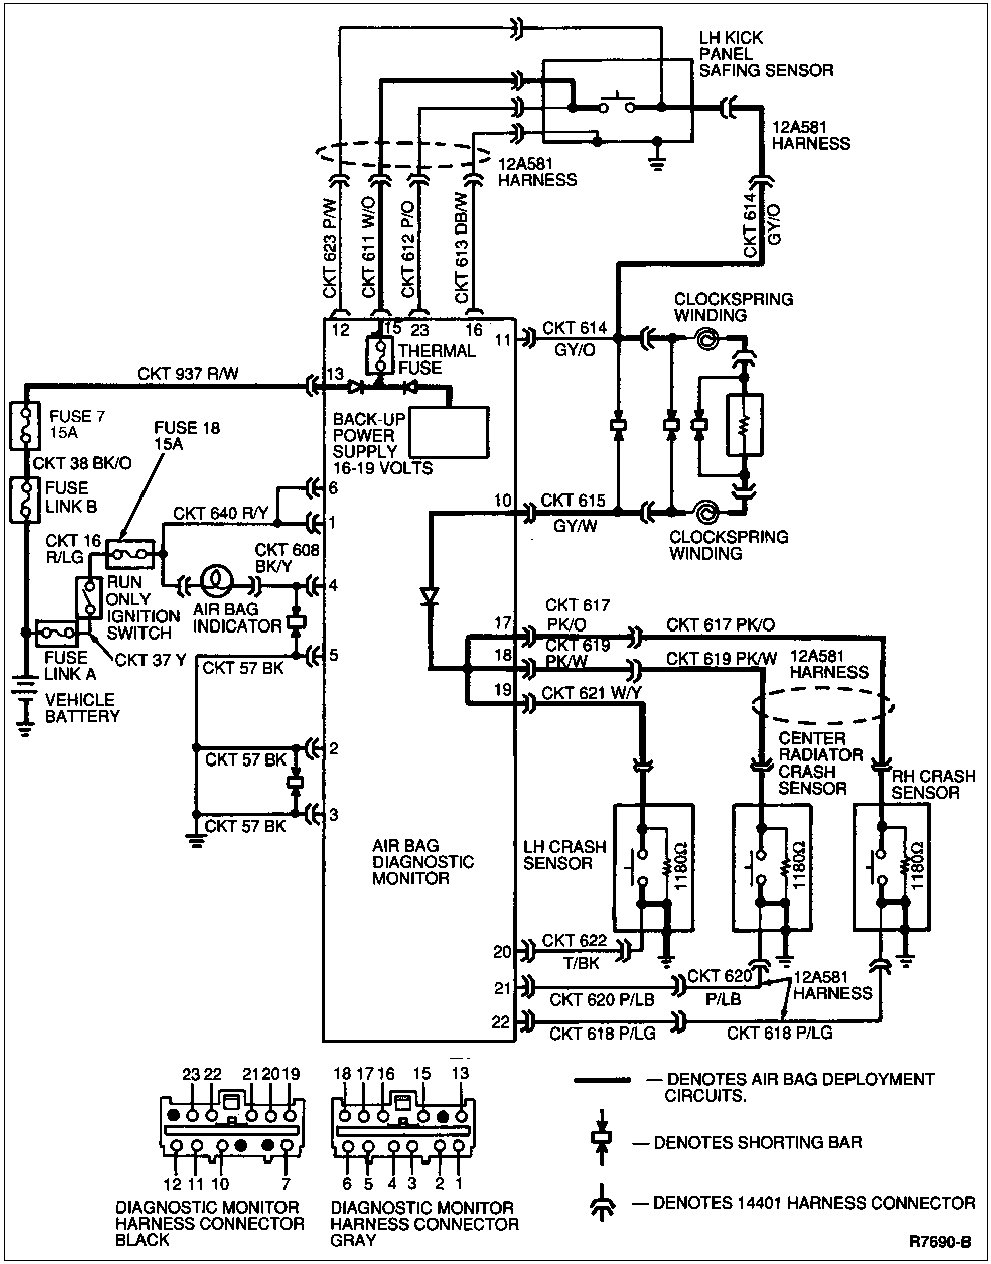 DIAGRAM] 93 Mustang Air Bag Wiring Diagram FULL Version HD Quality Wiring  Diagram - UNITEDPHASEDIAGRAMS.NGTONPOST.FRunitedphasediagrams.ngtonpost.fr